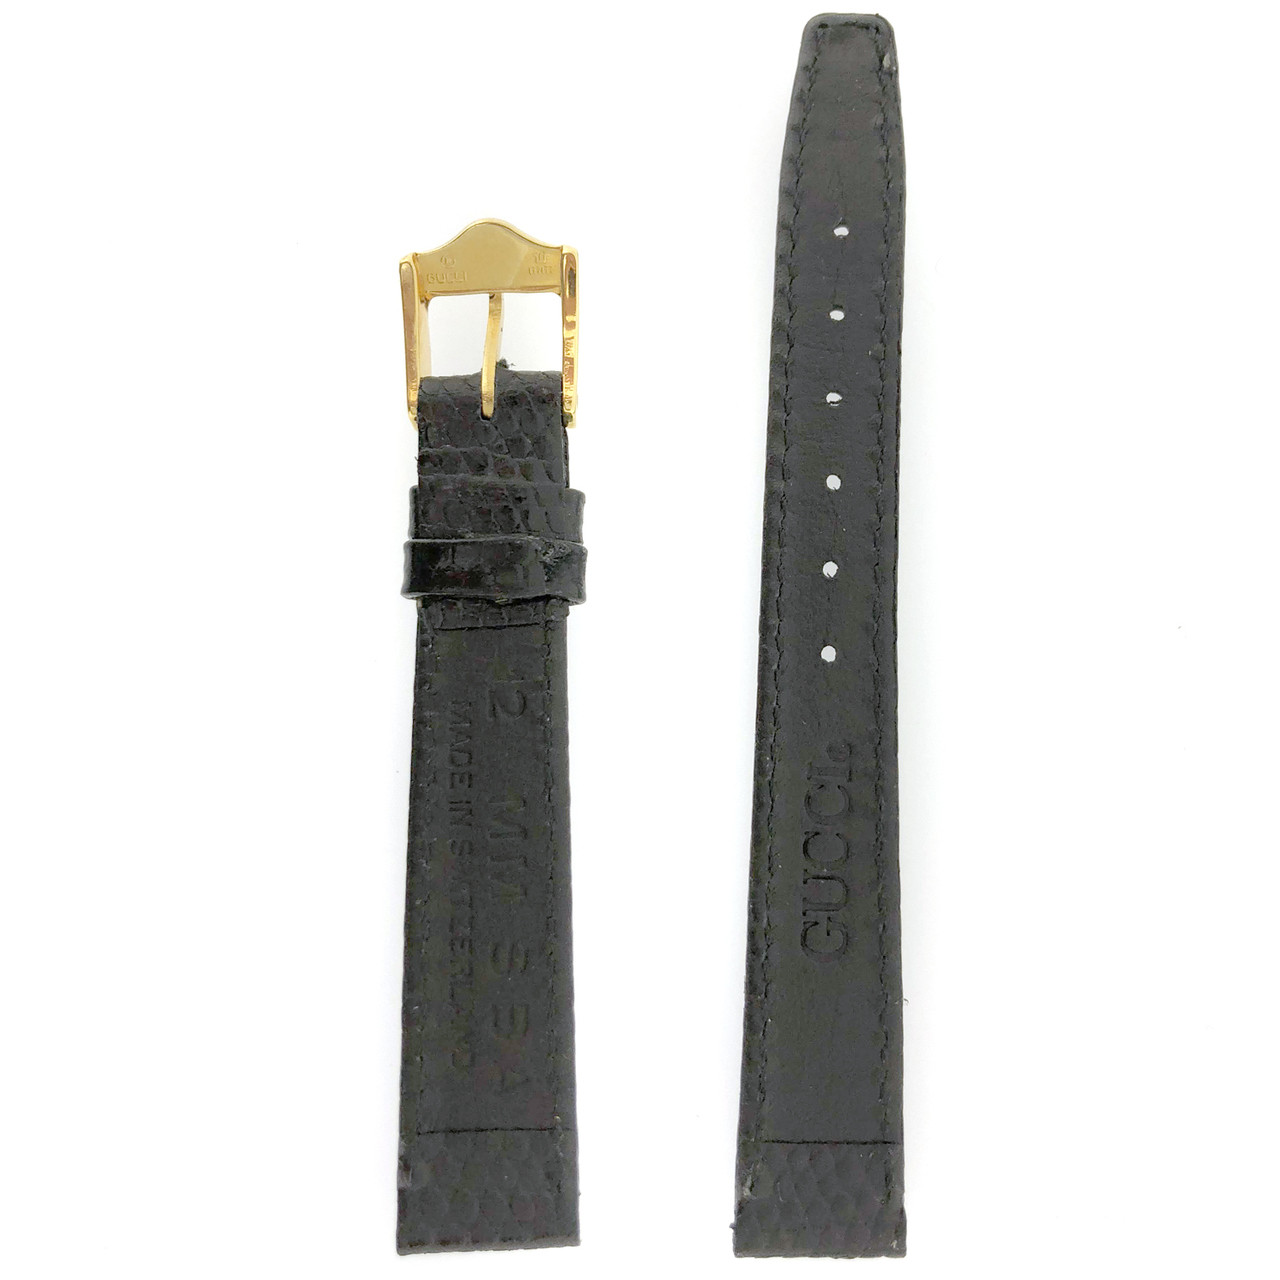 Gucci watchband